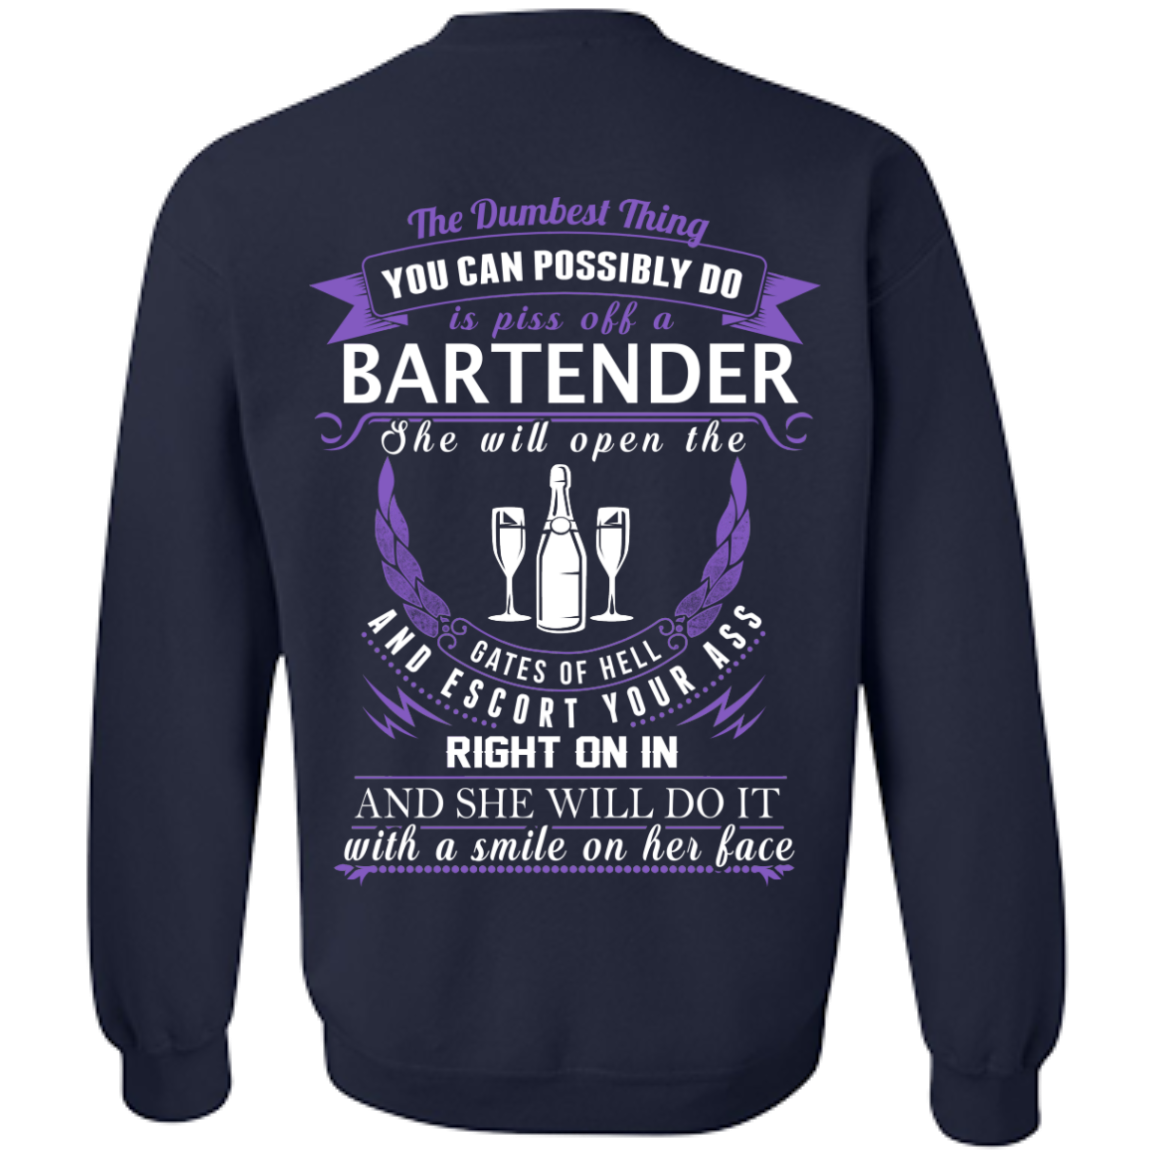 The Dumbest Thing...Bartender...With a smile on her face - TheSunCat.com - 7